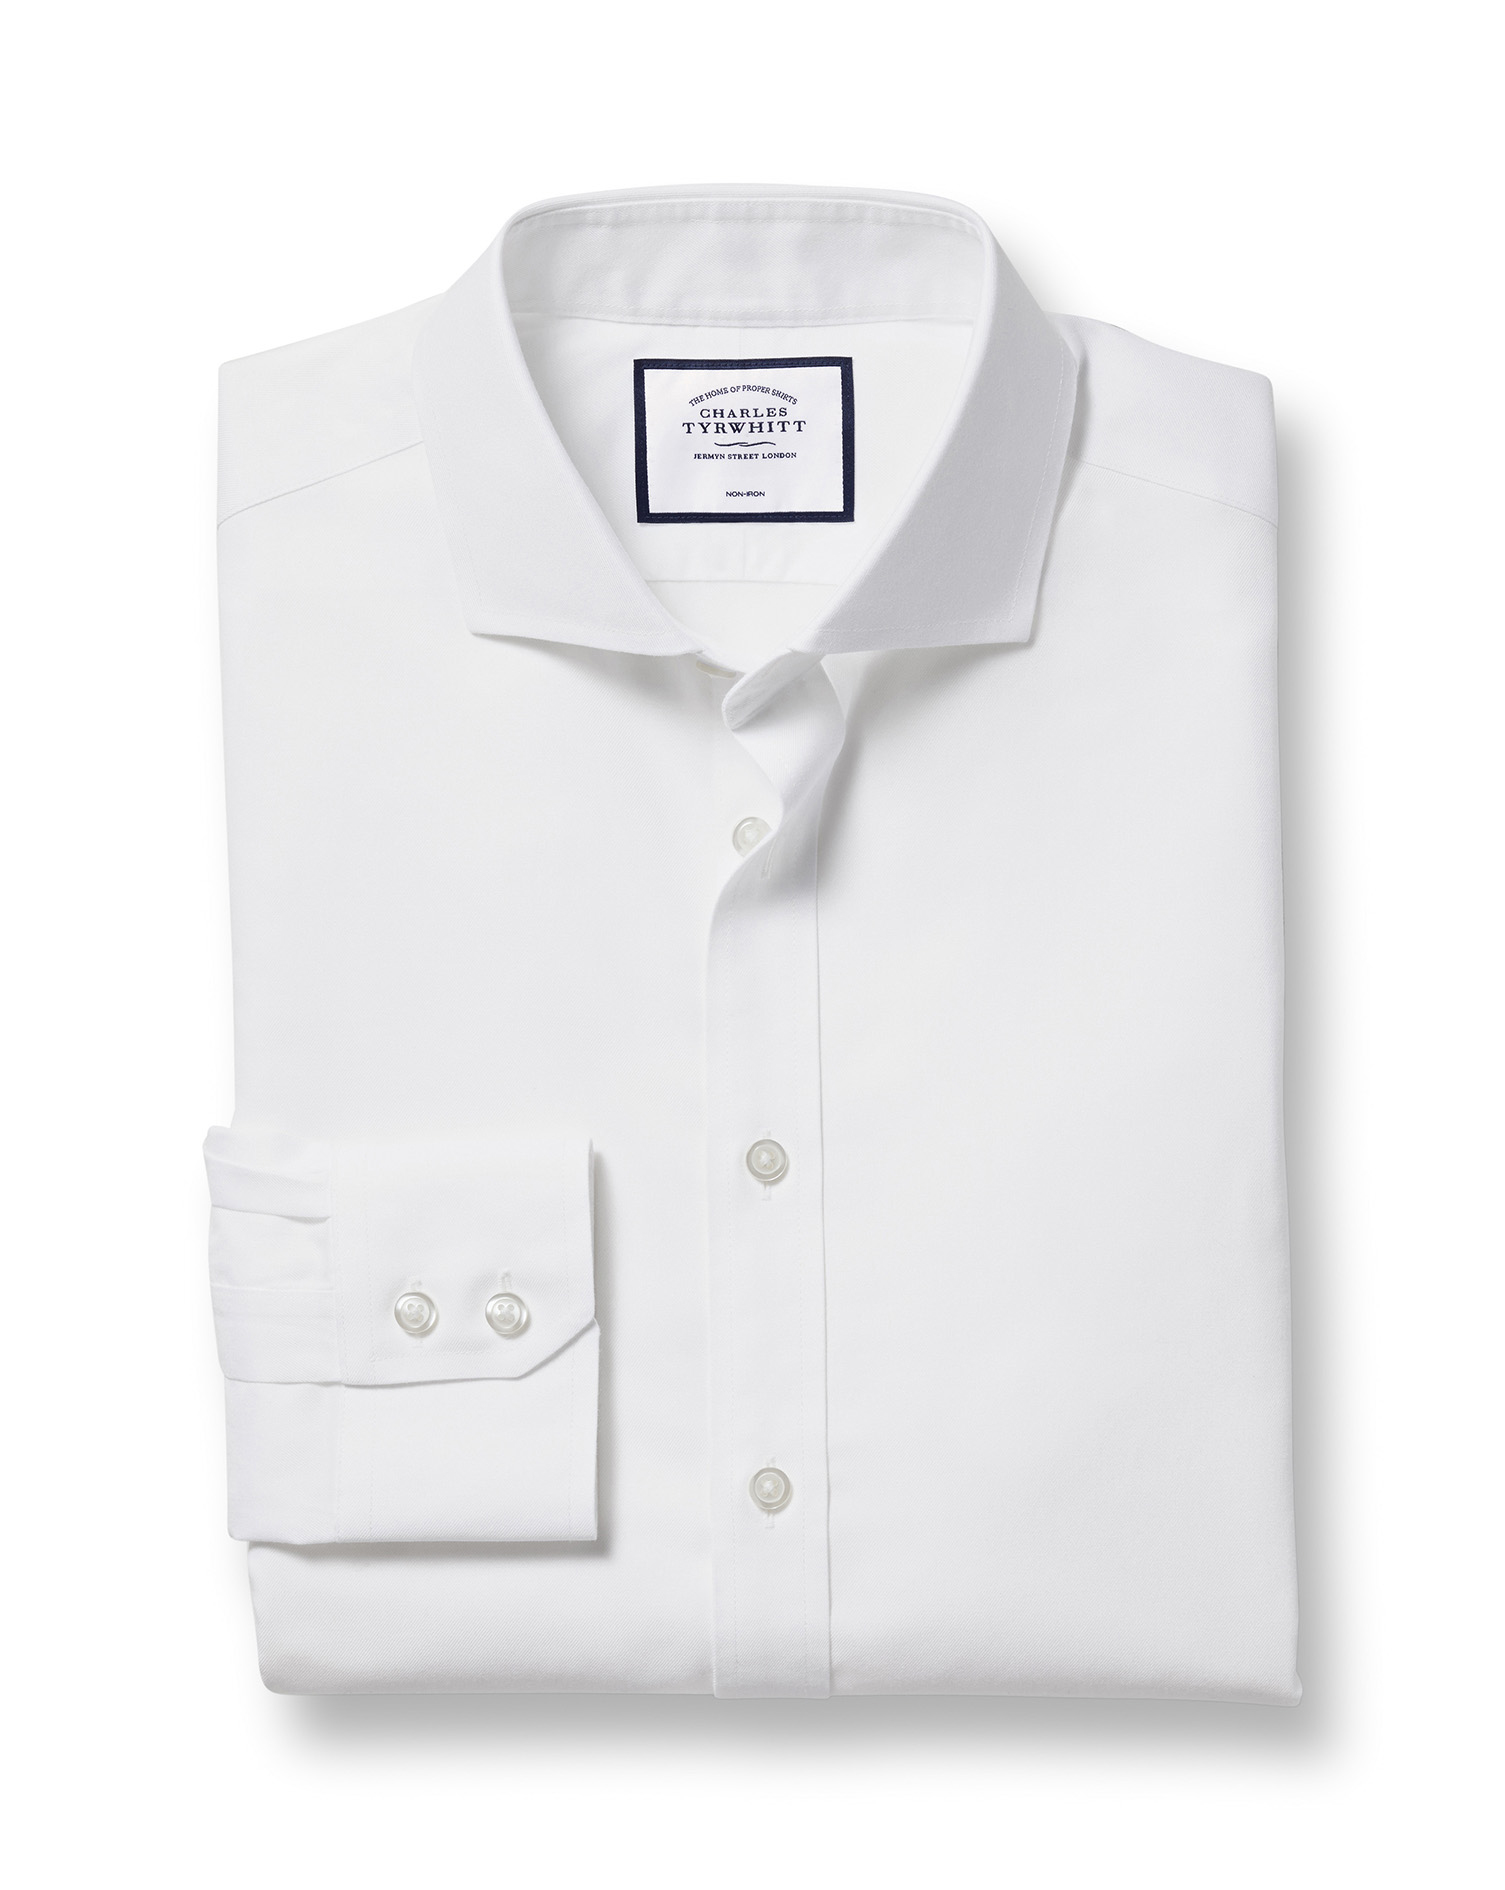 Extra Slim Fit Extreme Cutaway Non-Iron Twill White Cotton Formal Shirt Single Cuff Size 15.5/33 by